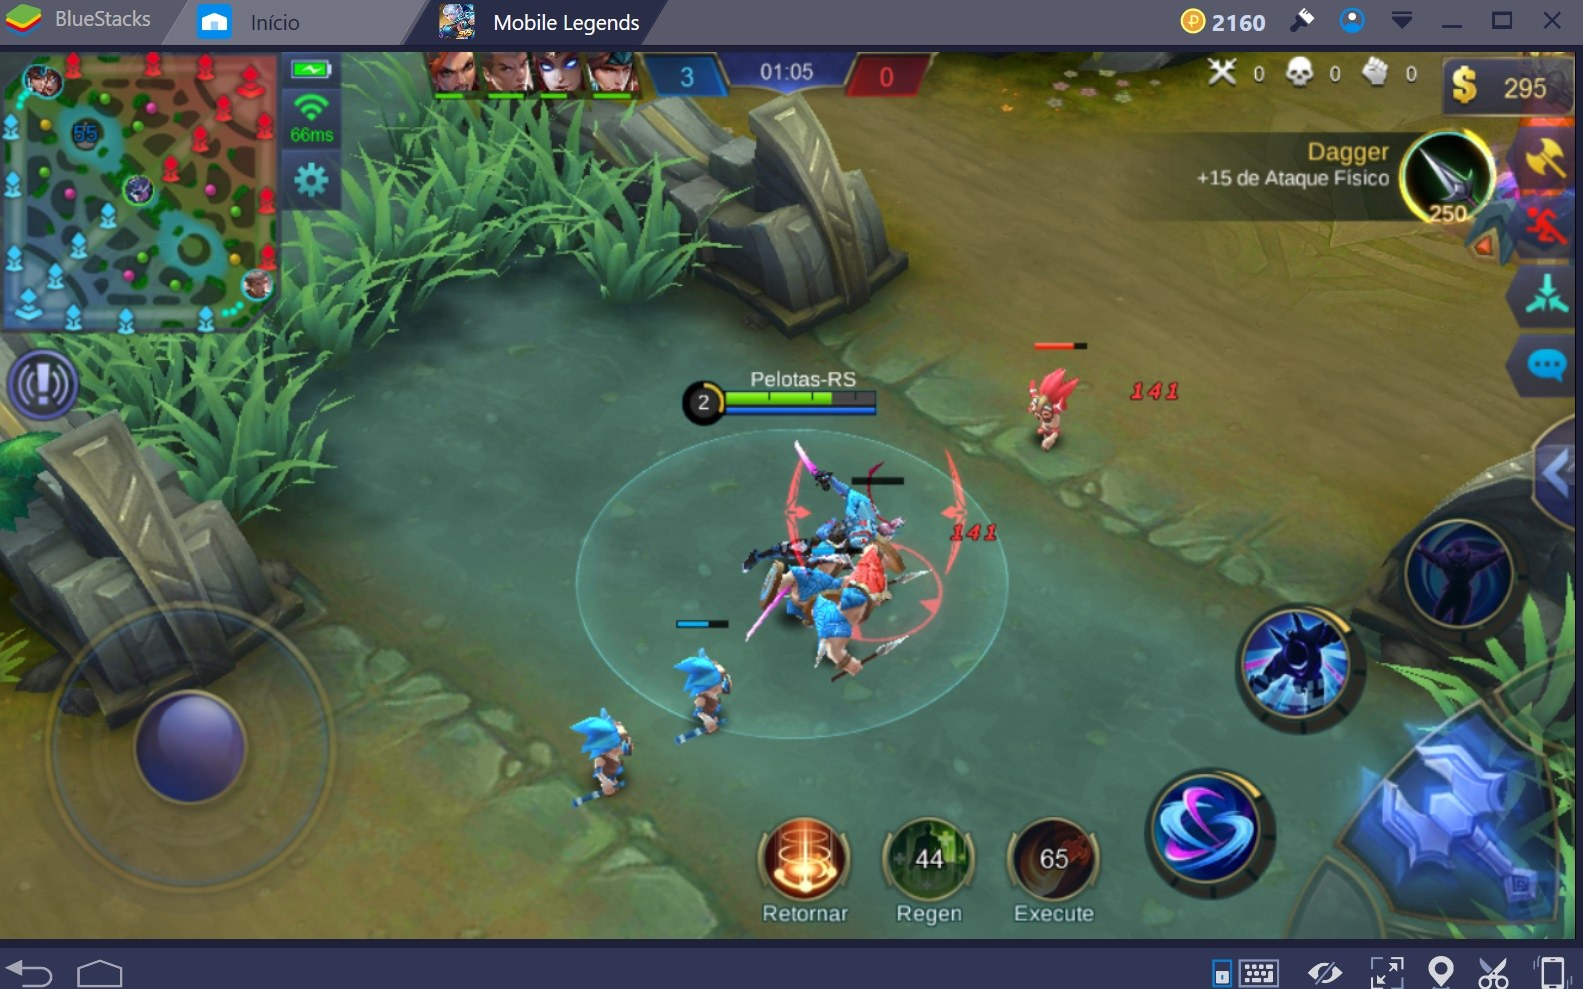 Mobile Legends Reverter Pt Img 1